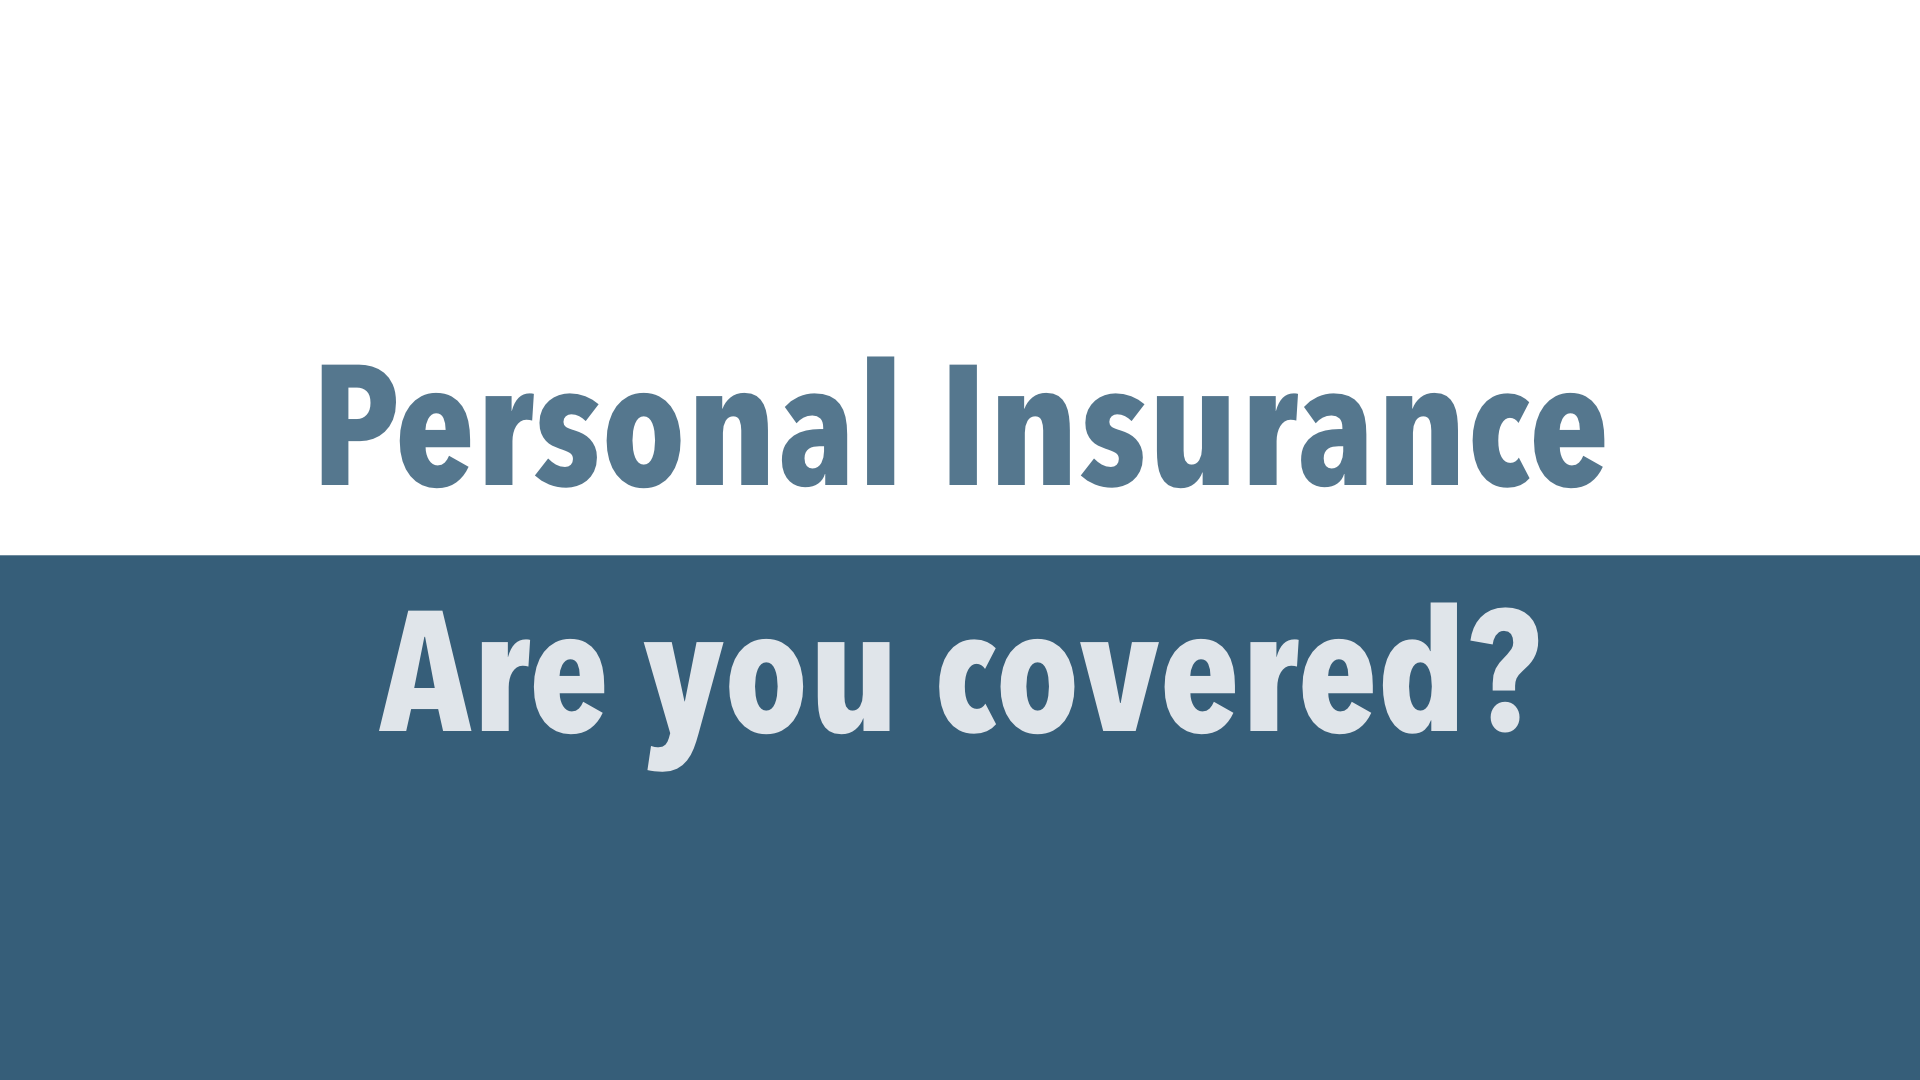 Personal Insurance - Are you covered?